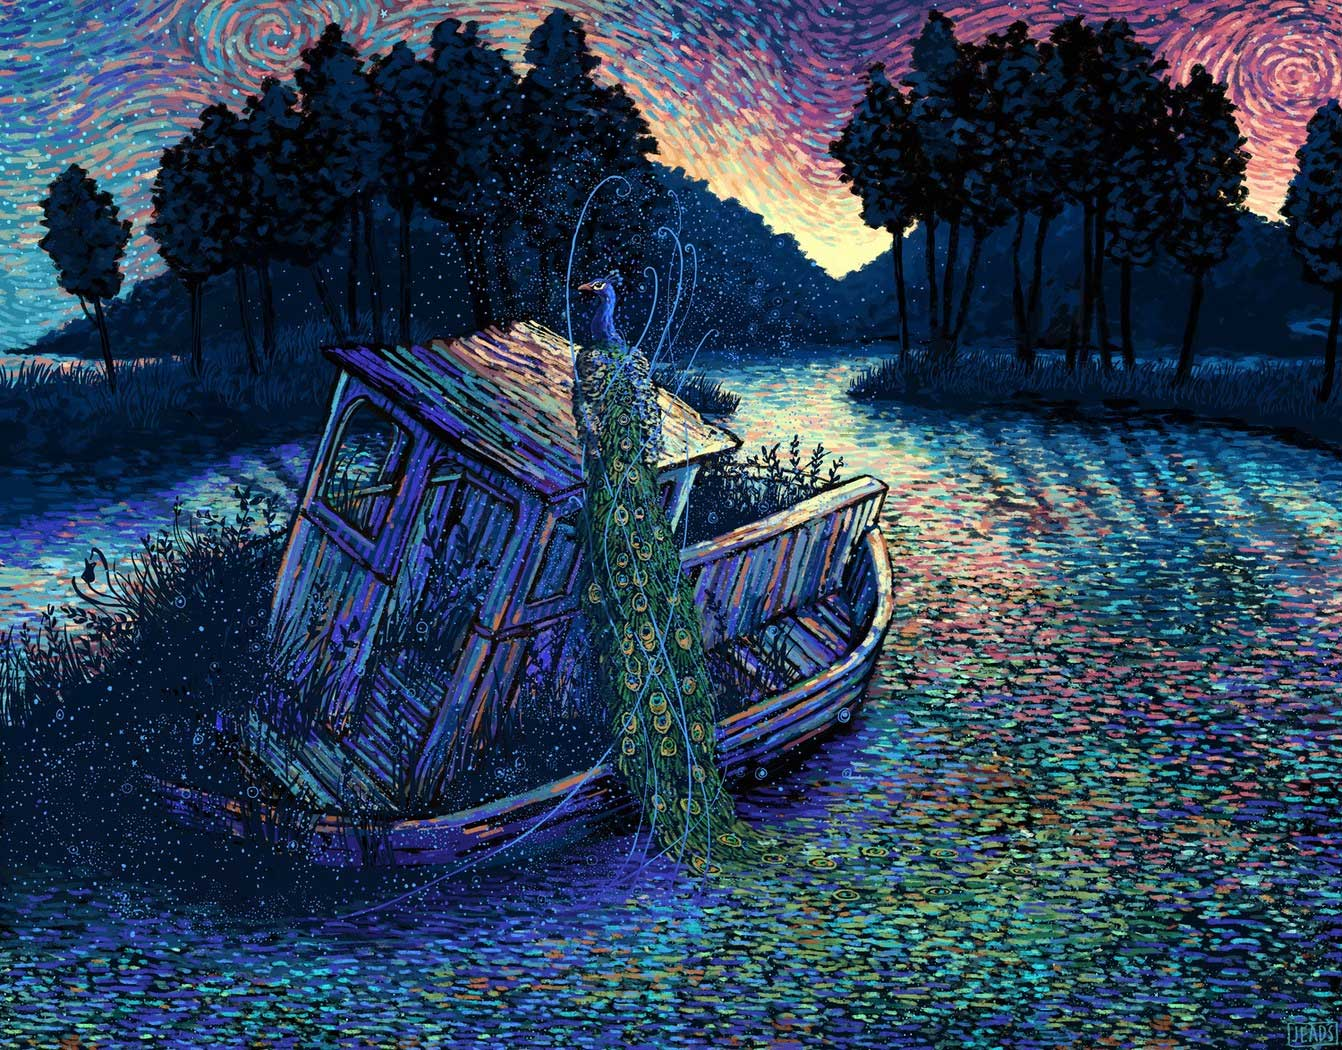 Malerei: James R. Eads James-R-Eads-paintings_01